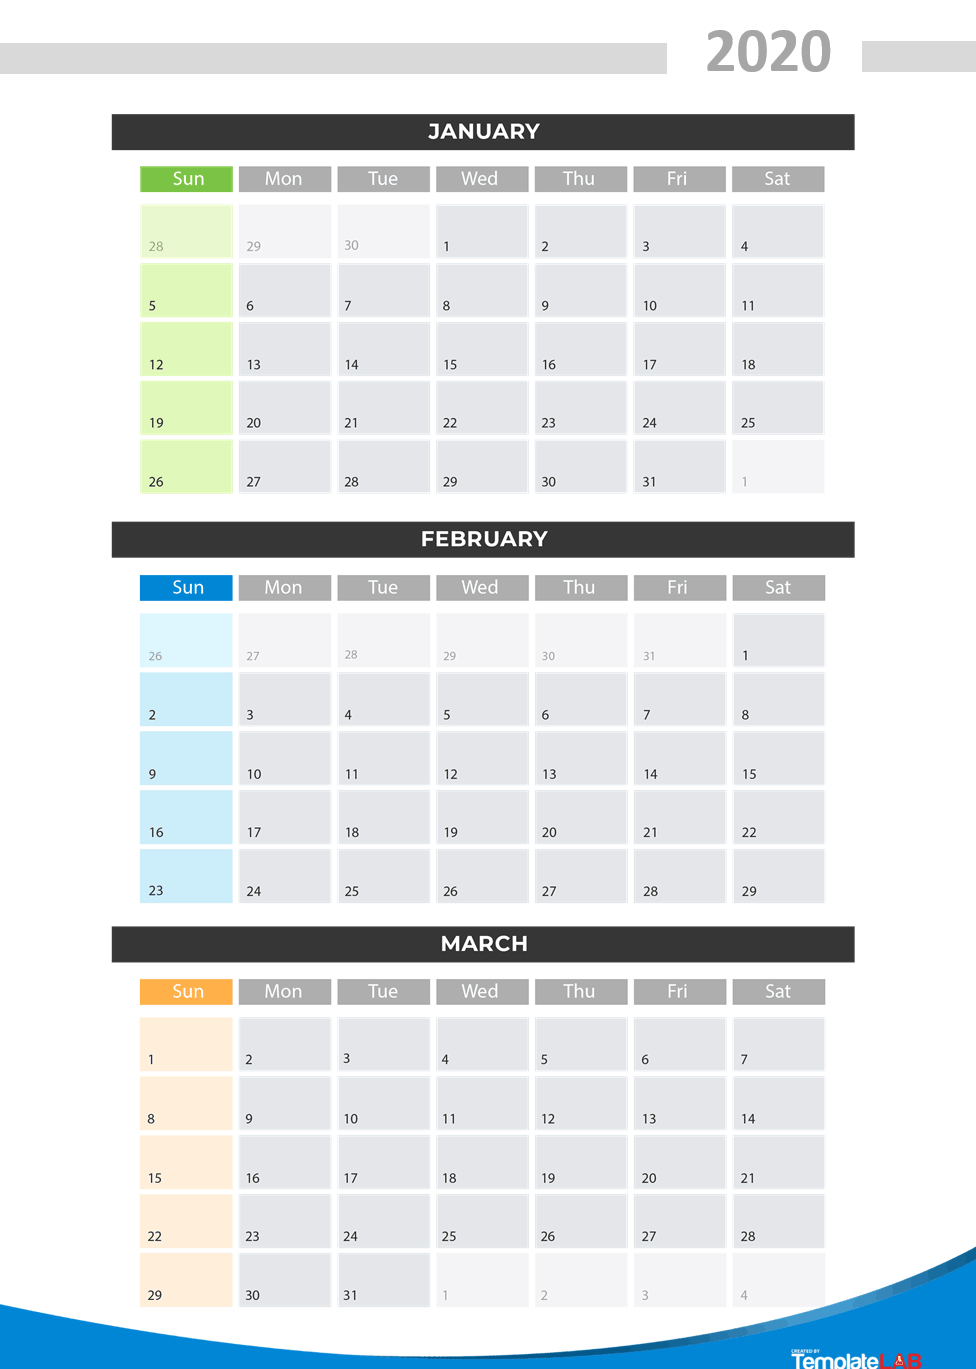 2020 Printable Calendars [Monthly, With Holidays, Yearly] ᐅ regarding 2020 Printable Calendar Templates Quarterly